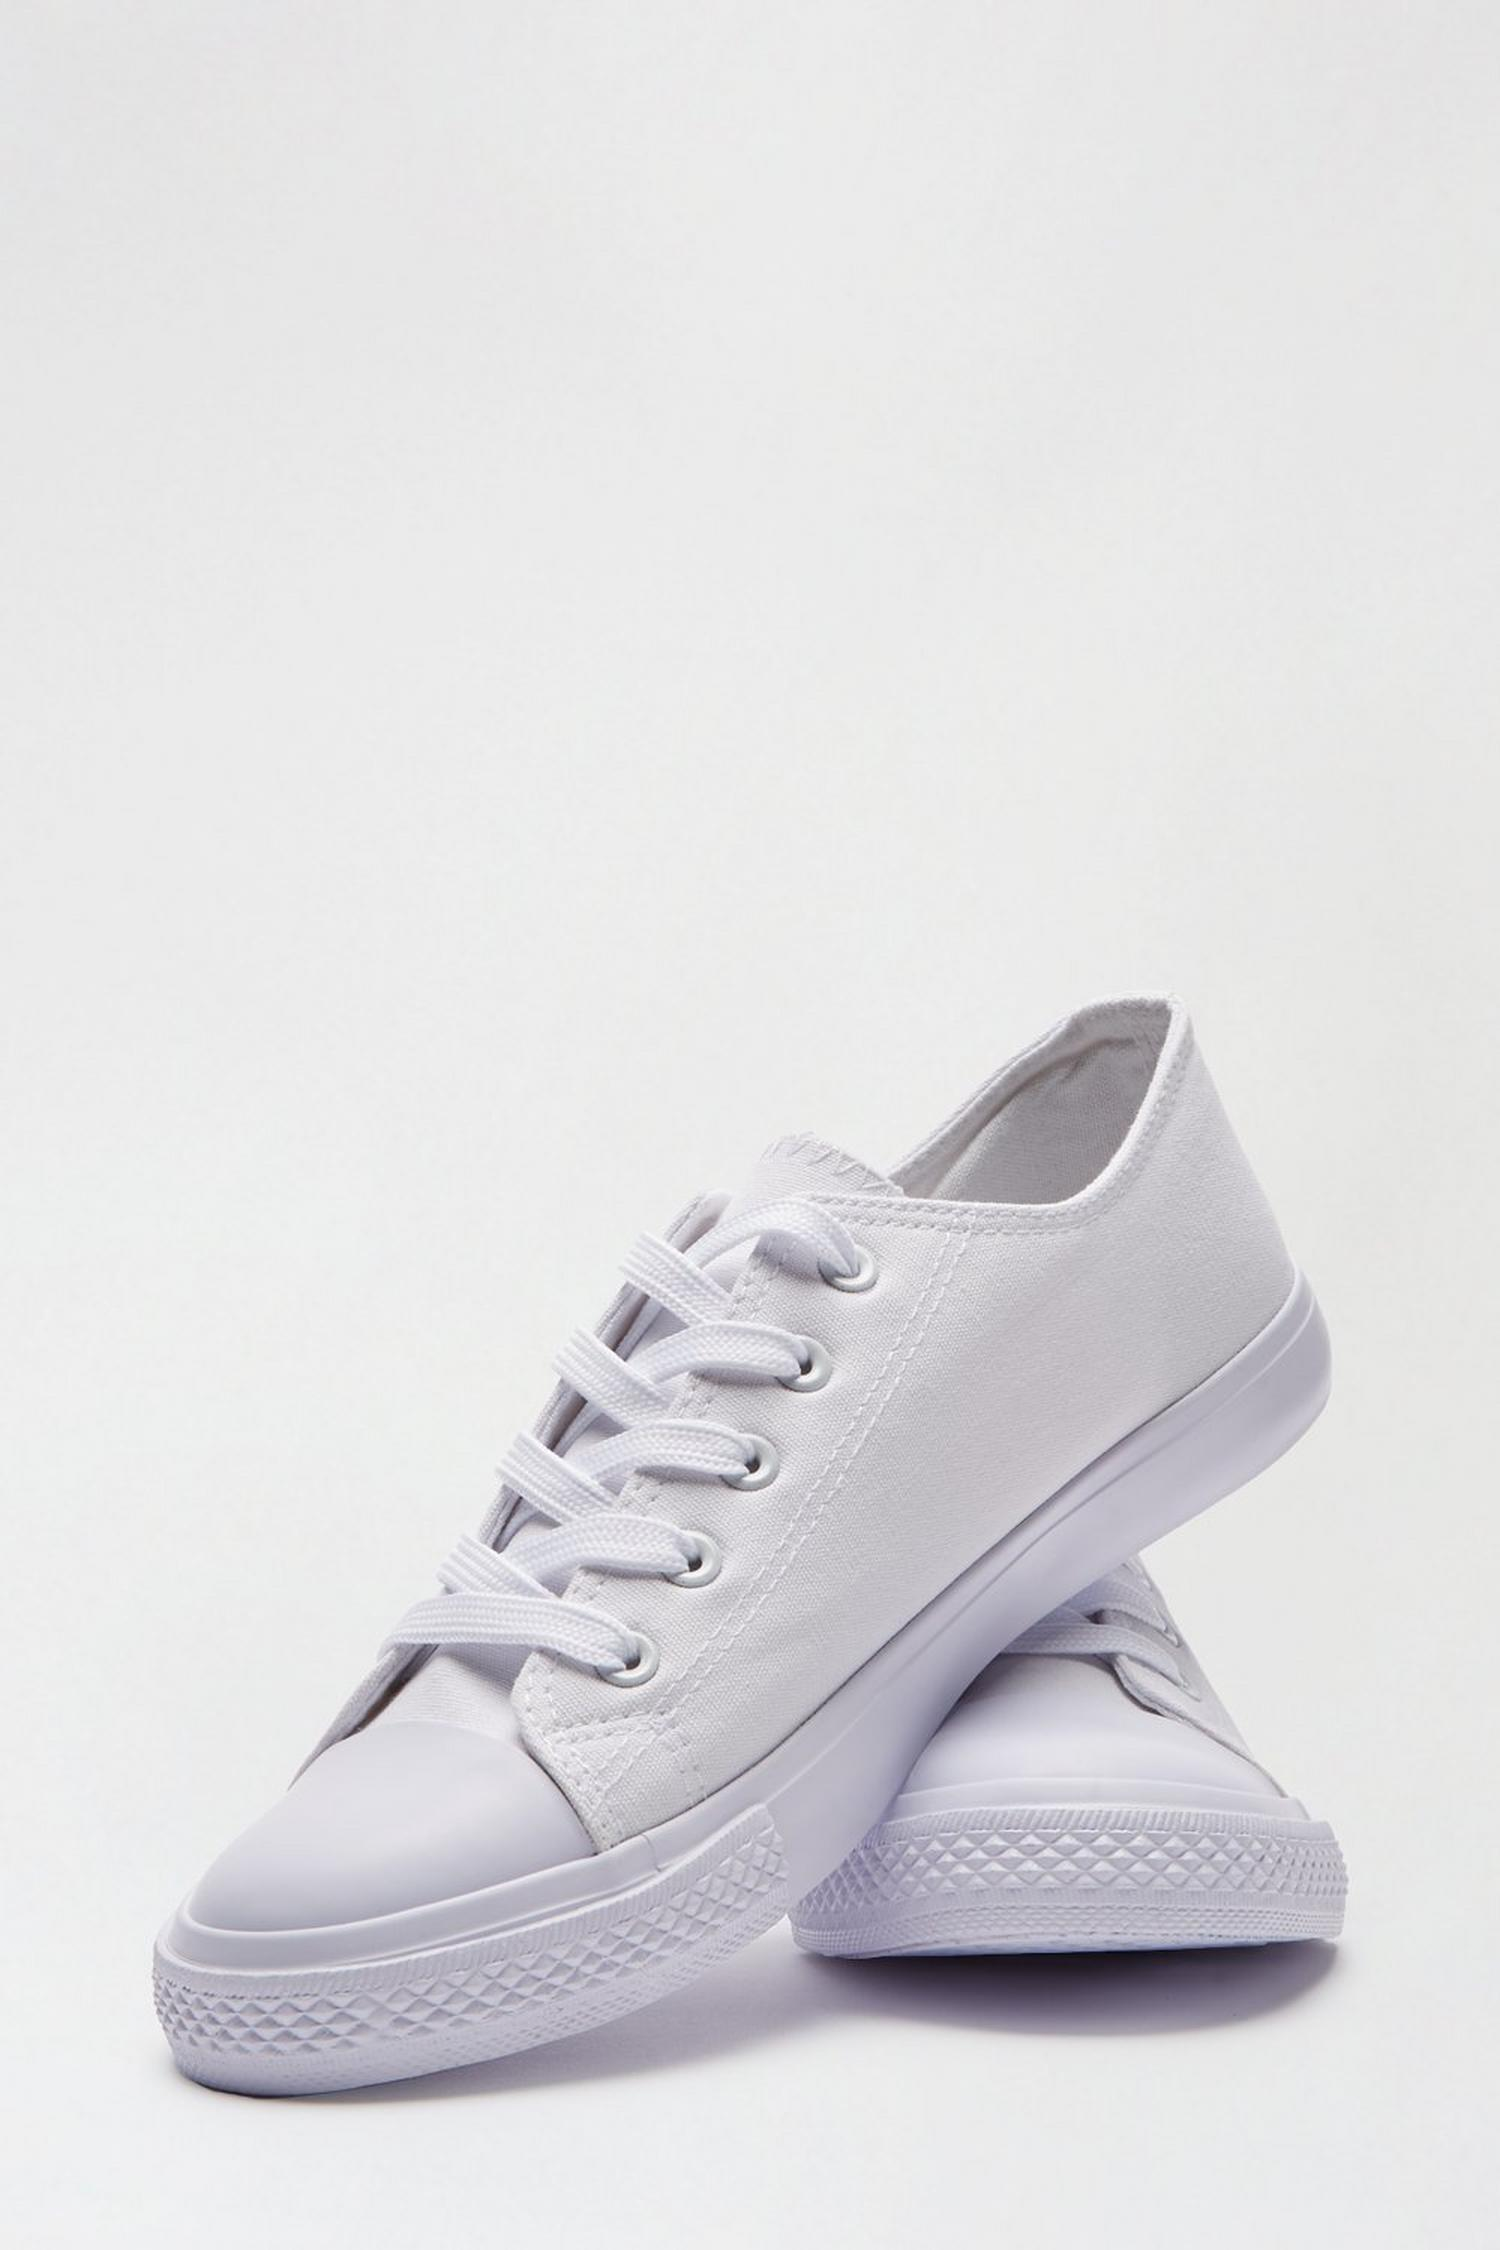 173 White Icon Canvas Trainers image number 3